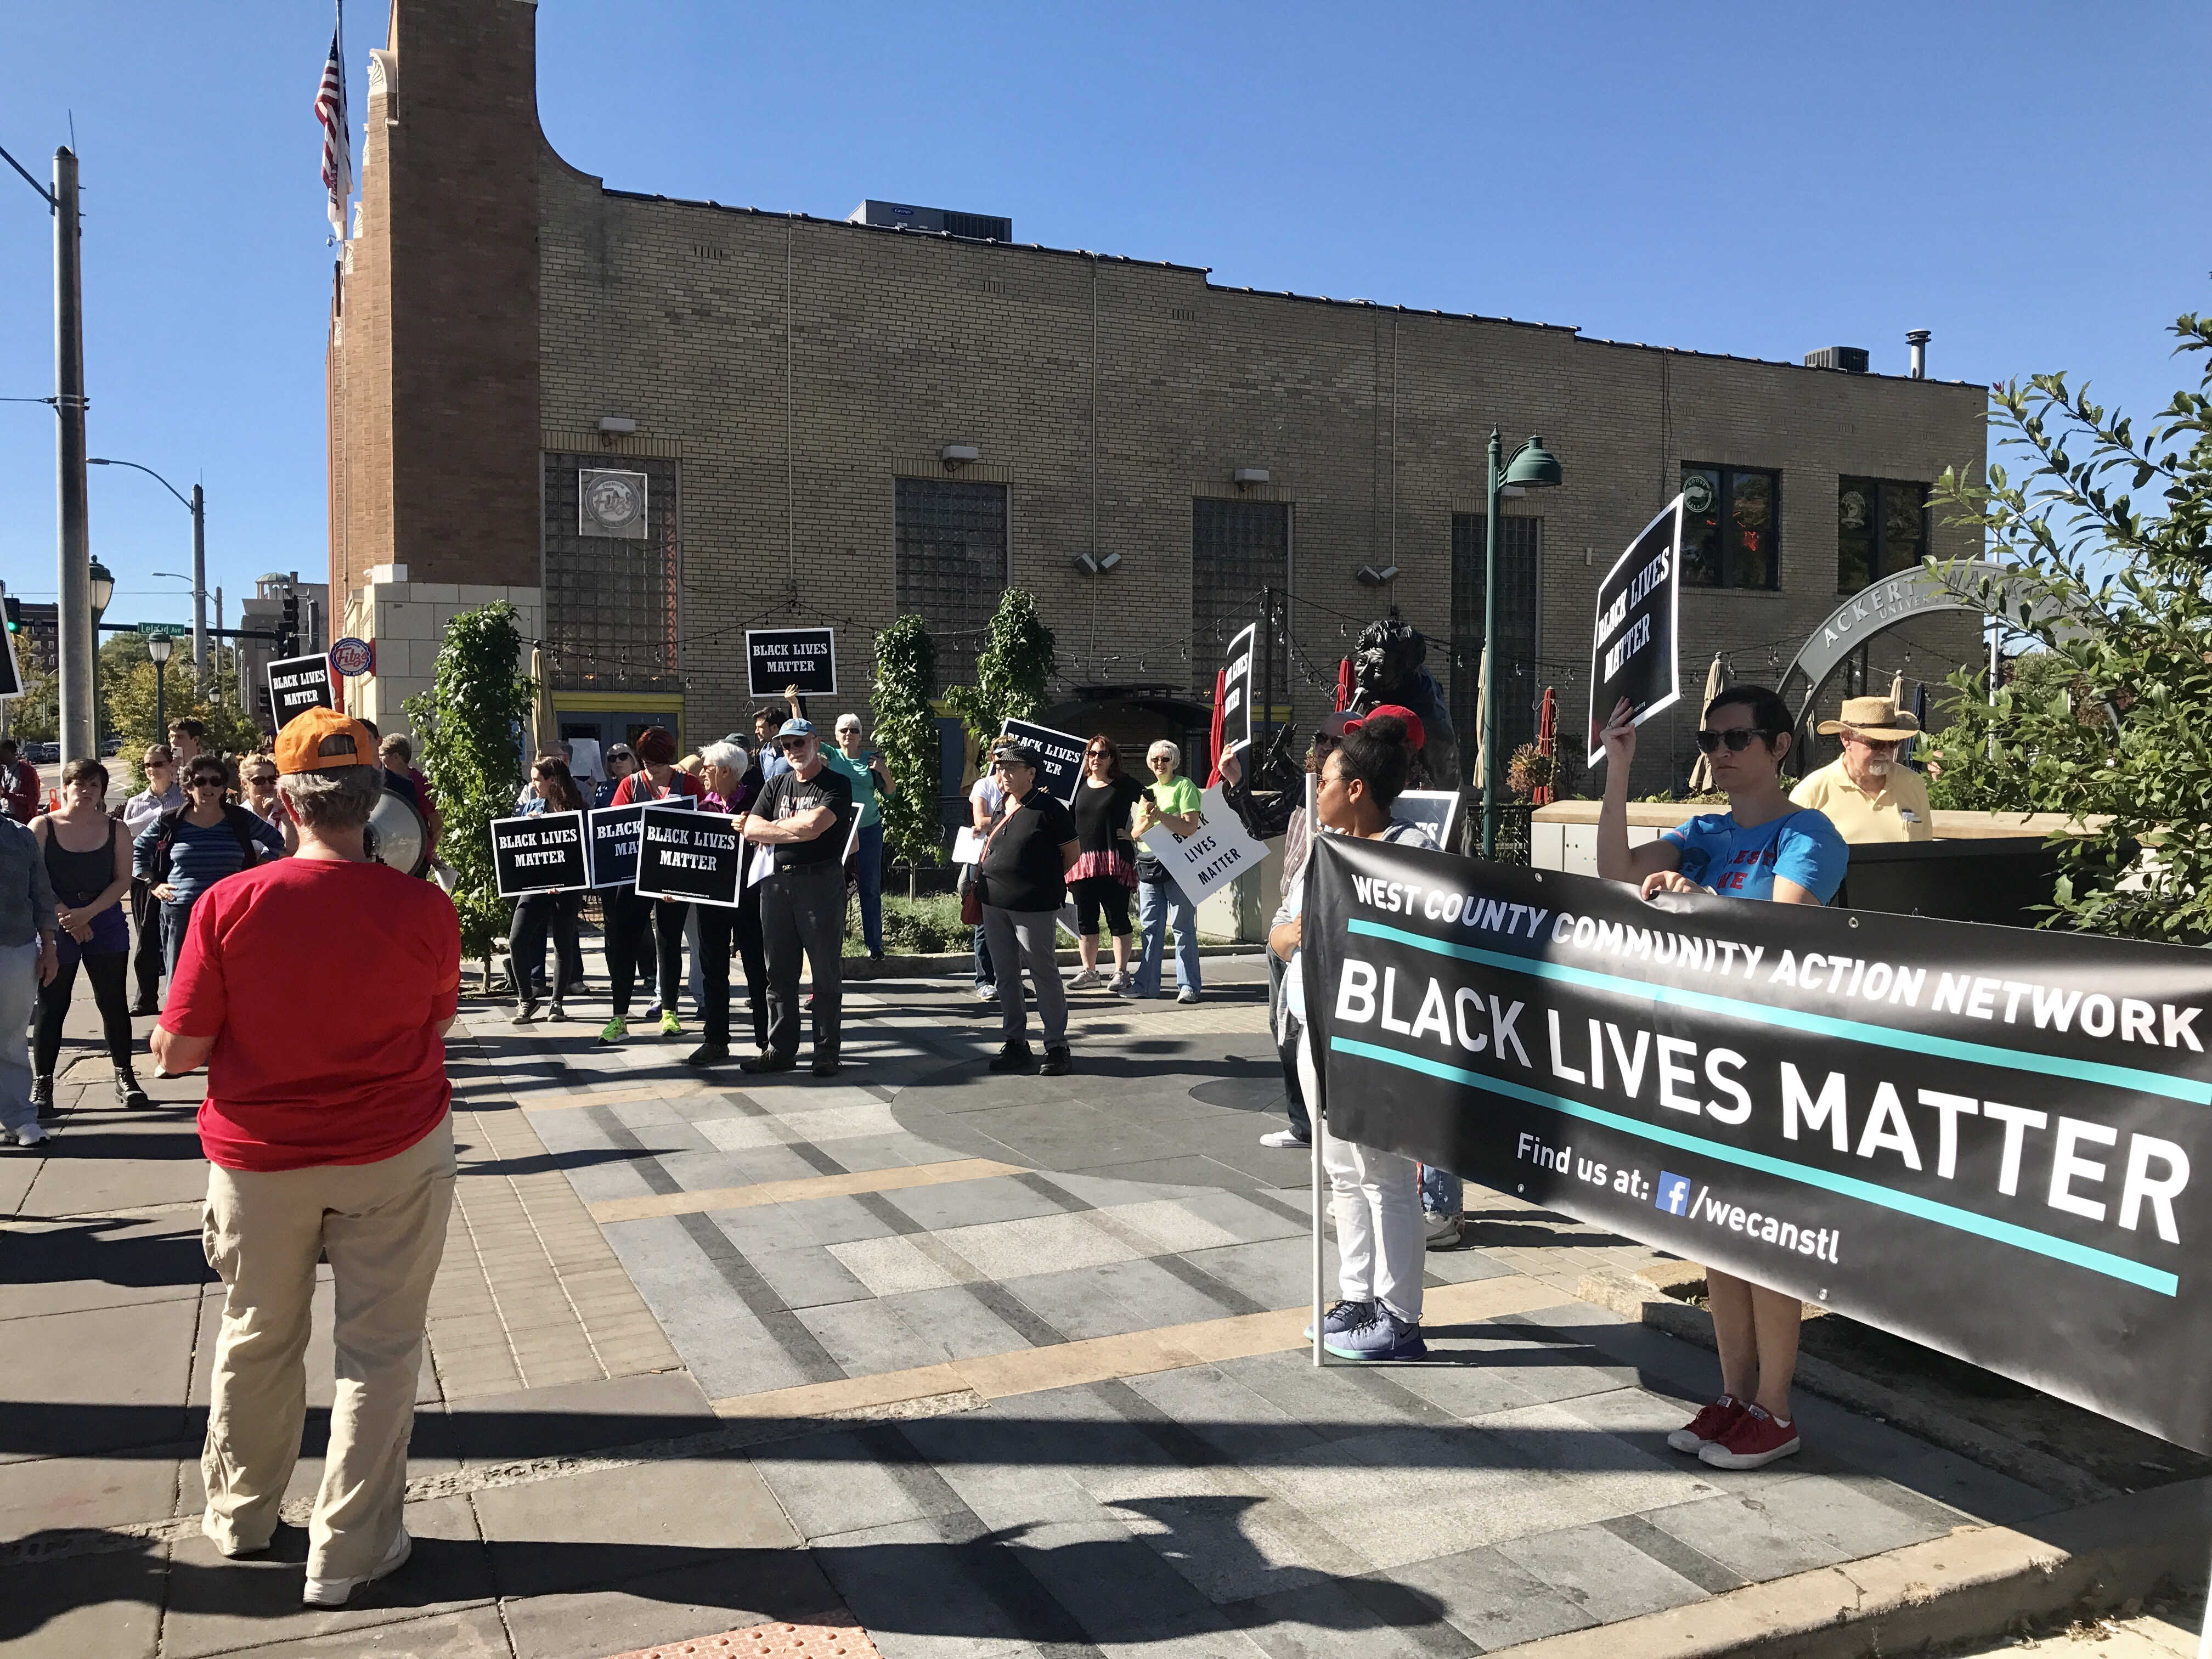 Black Lives Matter protest held on Loop by UCity Action Network